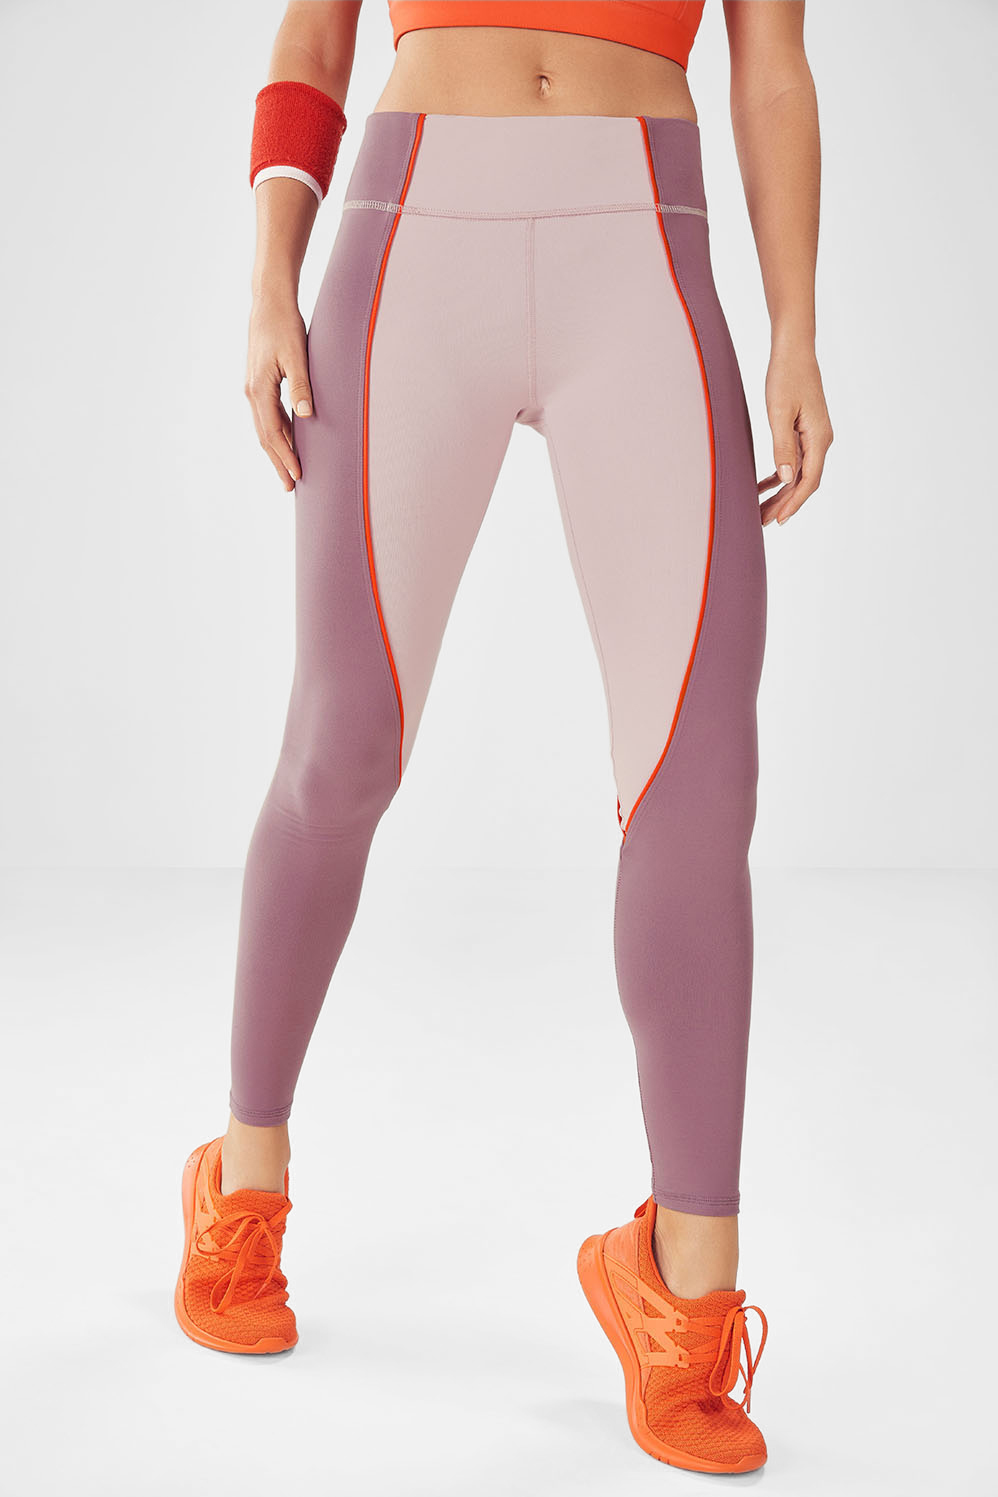 Salar Statement PowerHold® Legging - Dusty Rose/Rouge/Tangerine